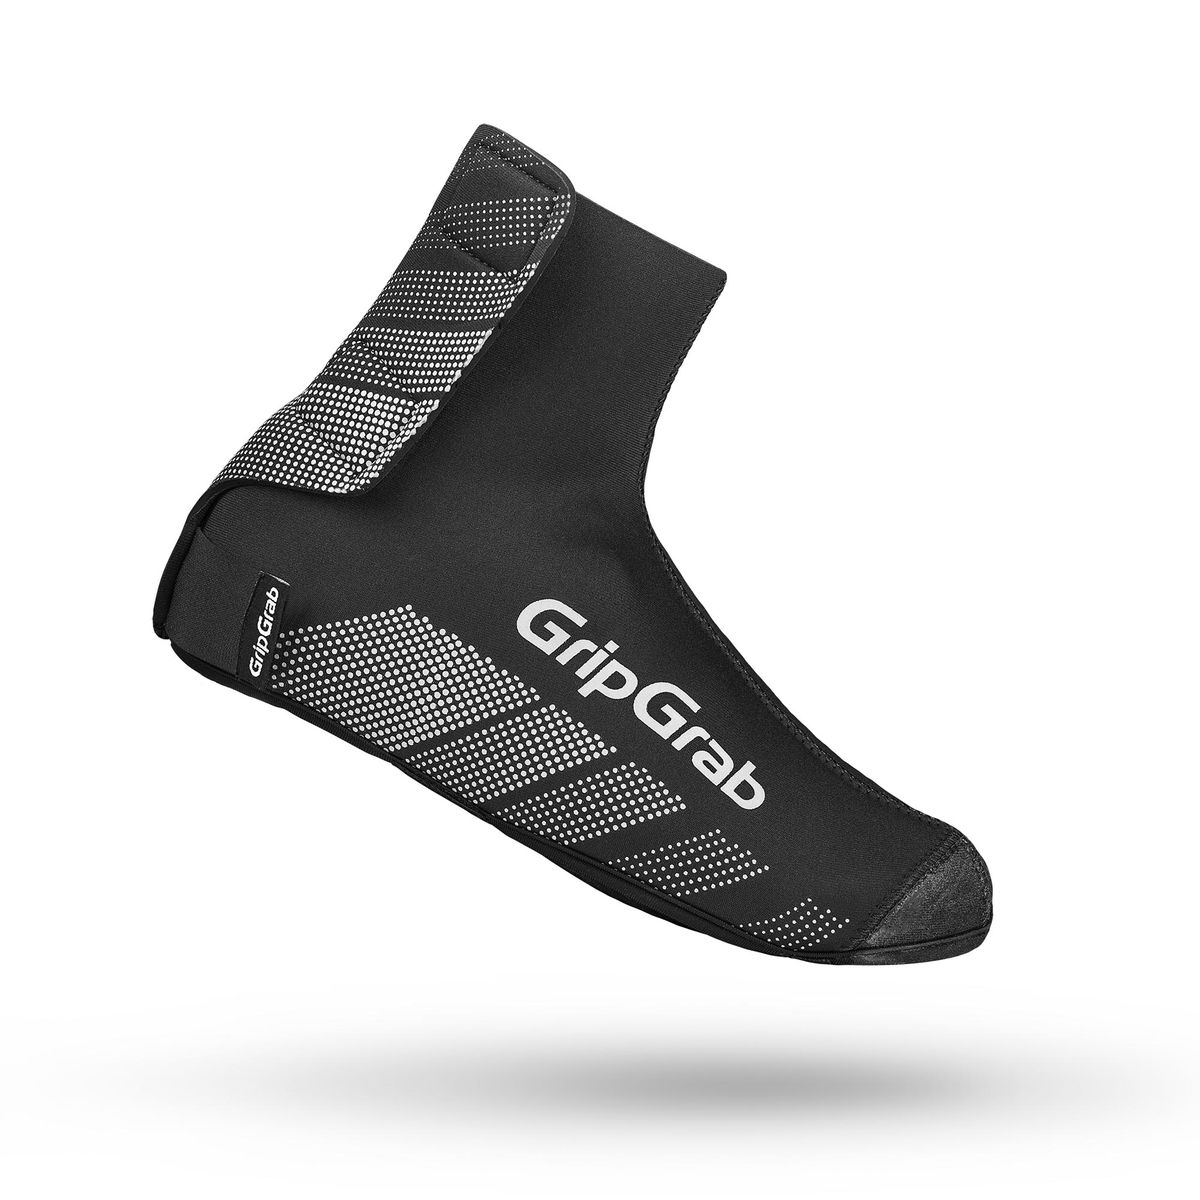 RIDE WINTER overshoes